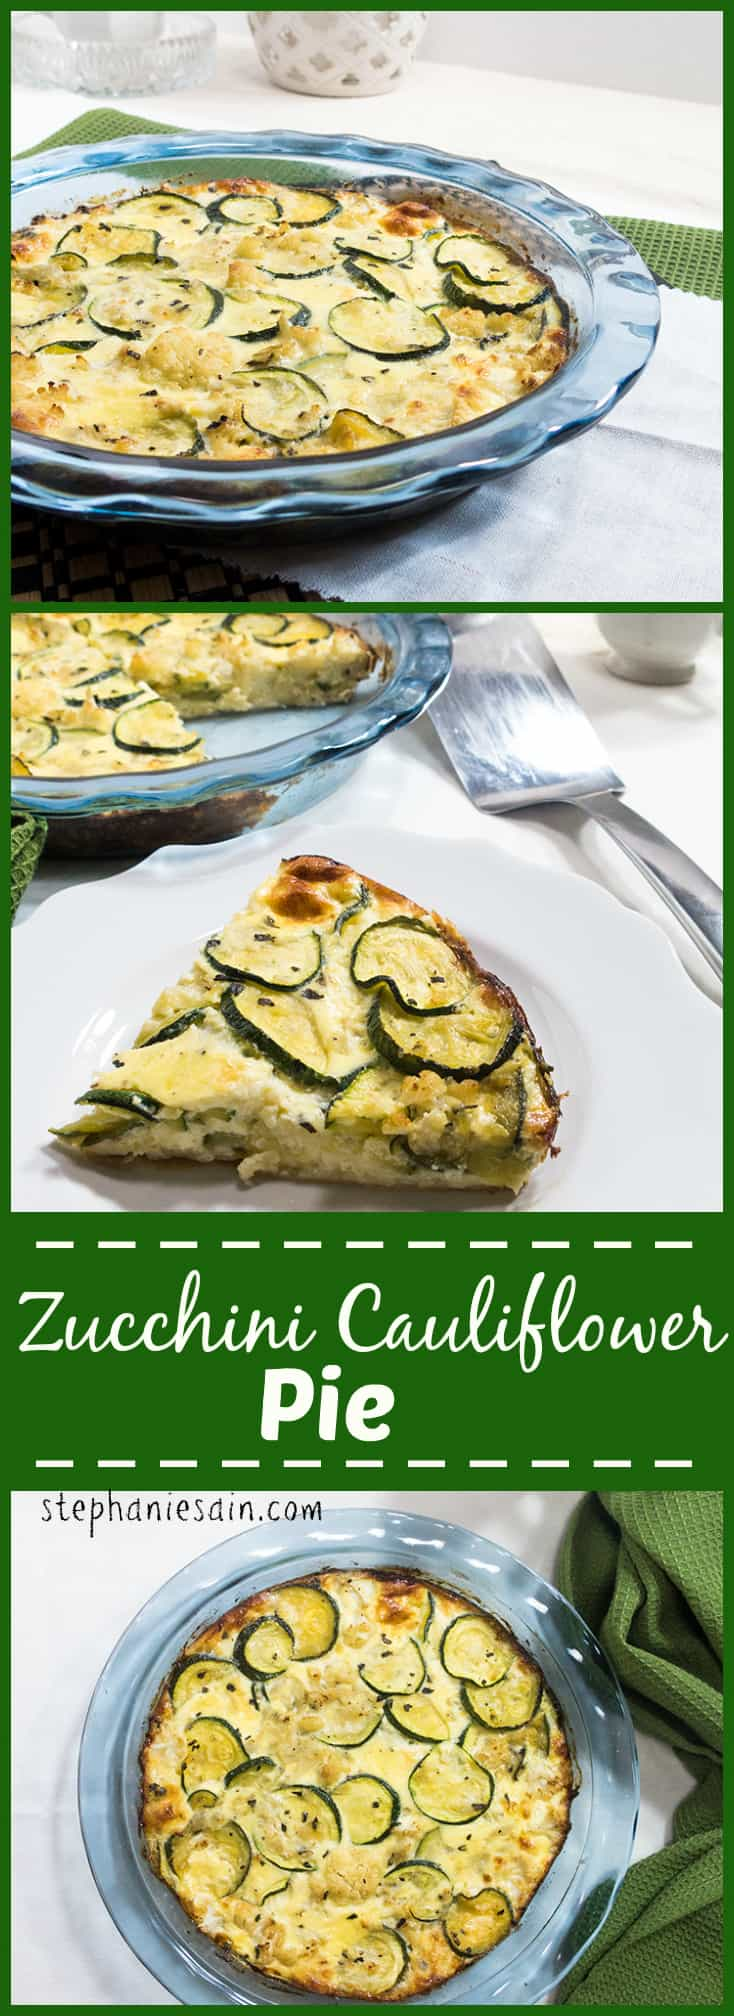 Zucchini Cauliflower Pie is a healthy, tasty pie filled with zucchini , cauliflower & cheese. Vegetarian and Gluten Free.